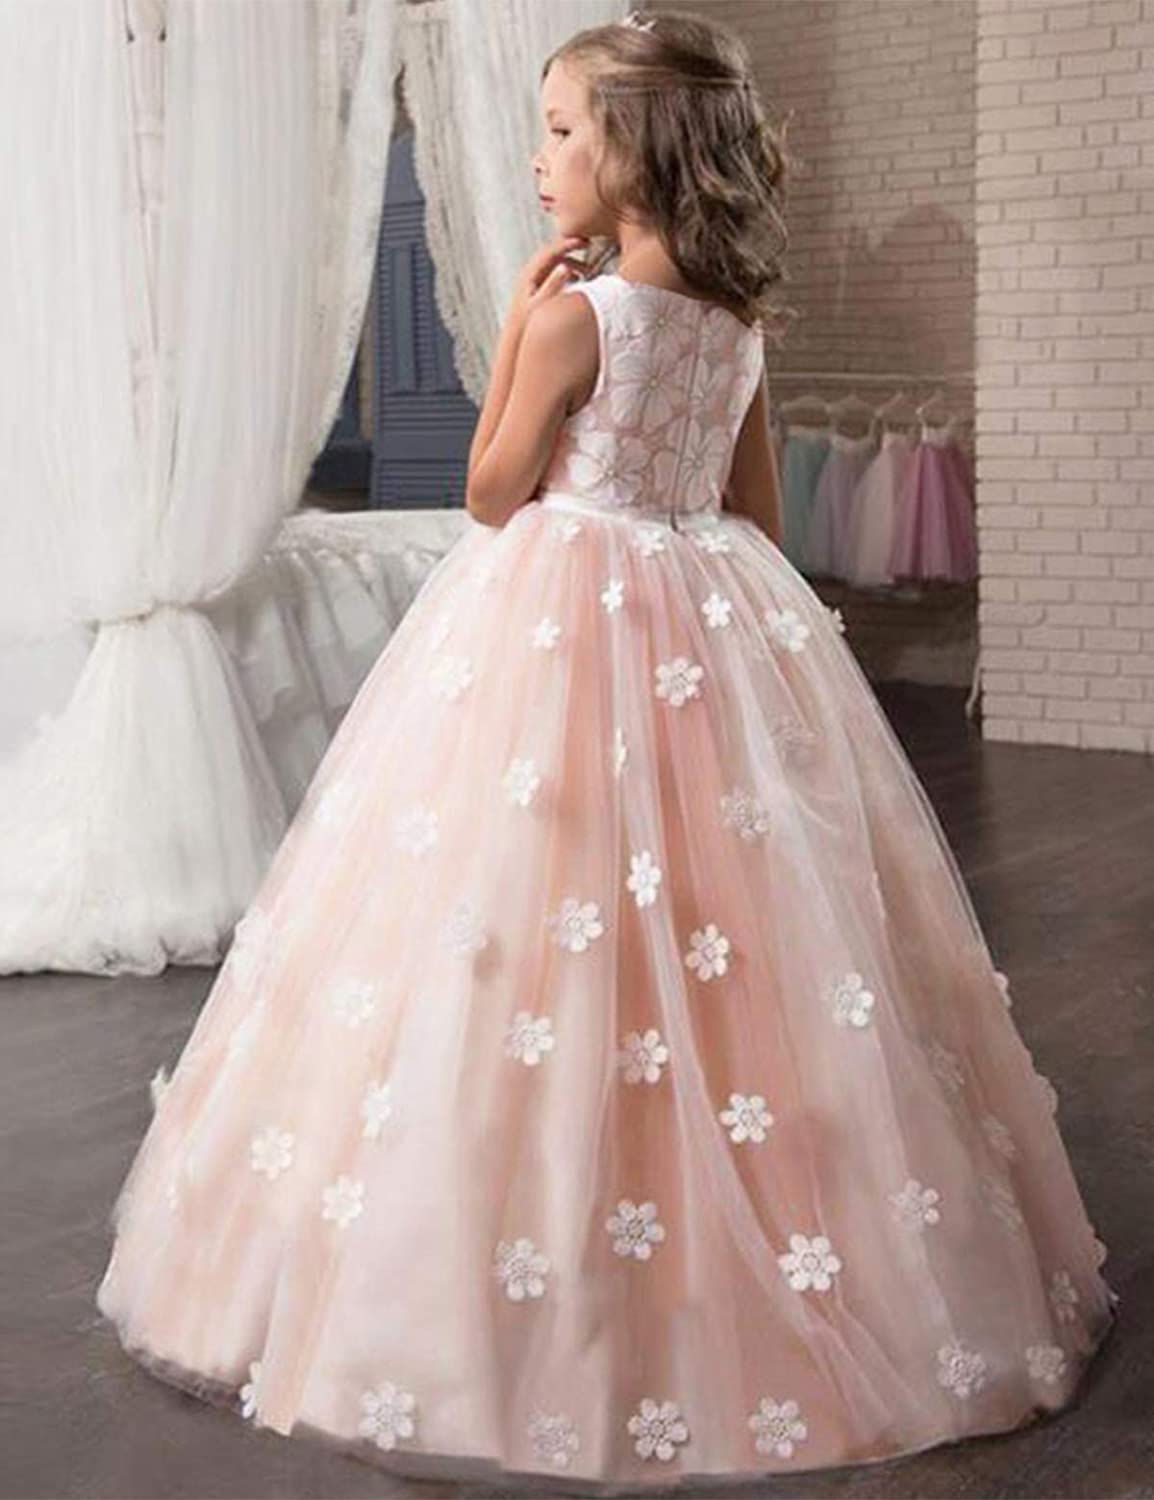 NNJXD Girls Princess Wedding Party Dresses Lace V-Neck Flower Printed Dress for 7-14 Years